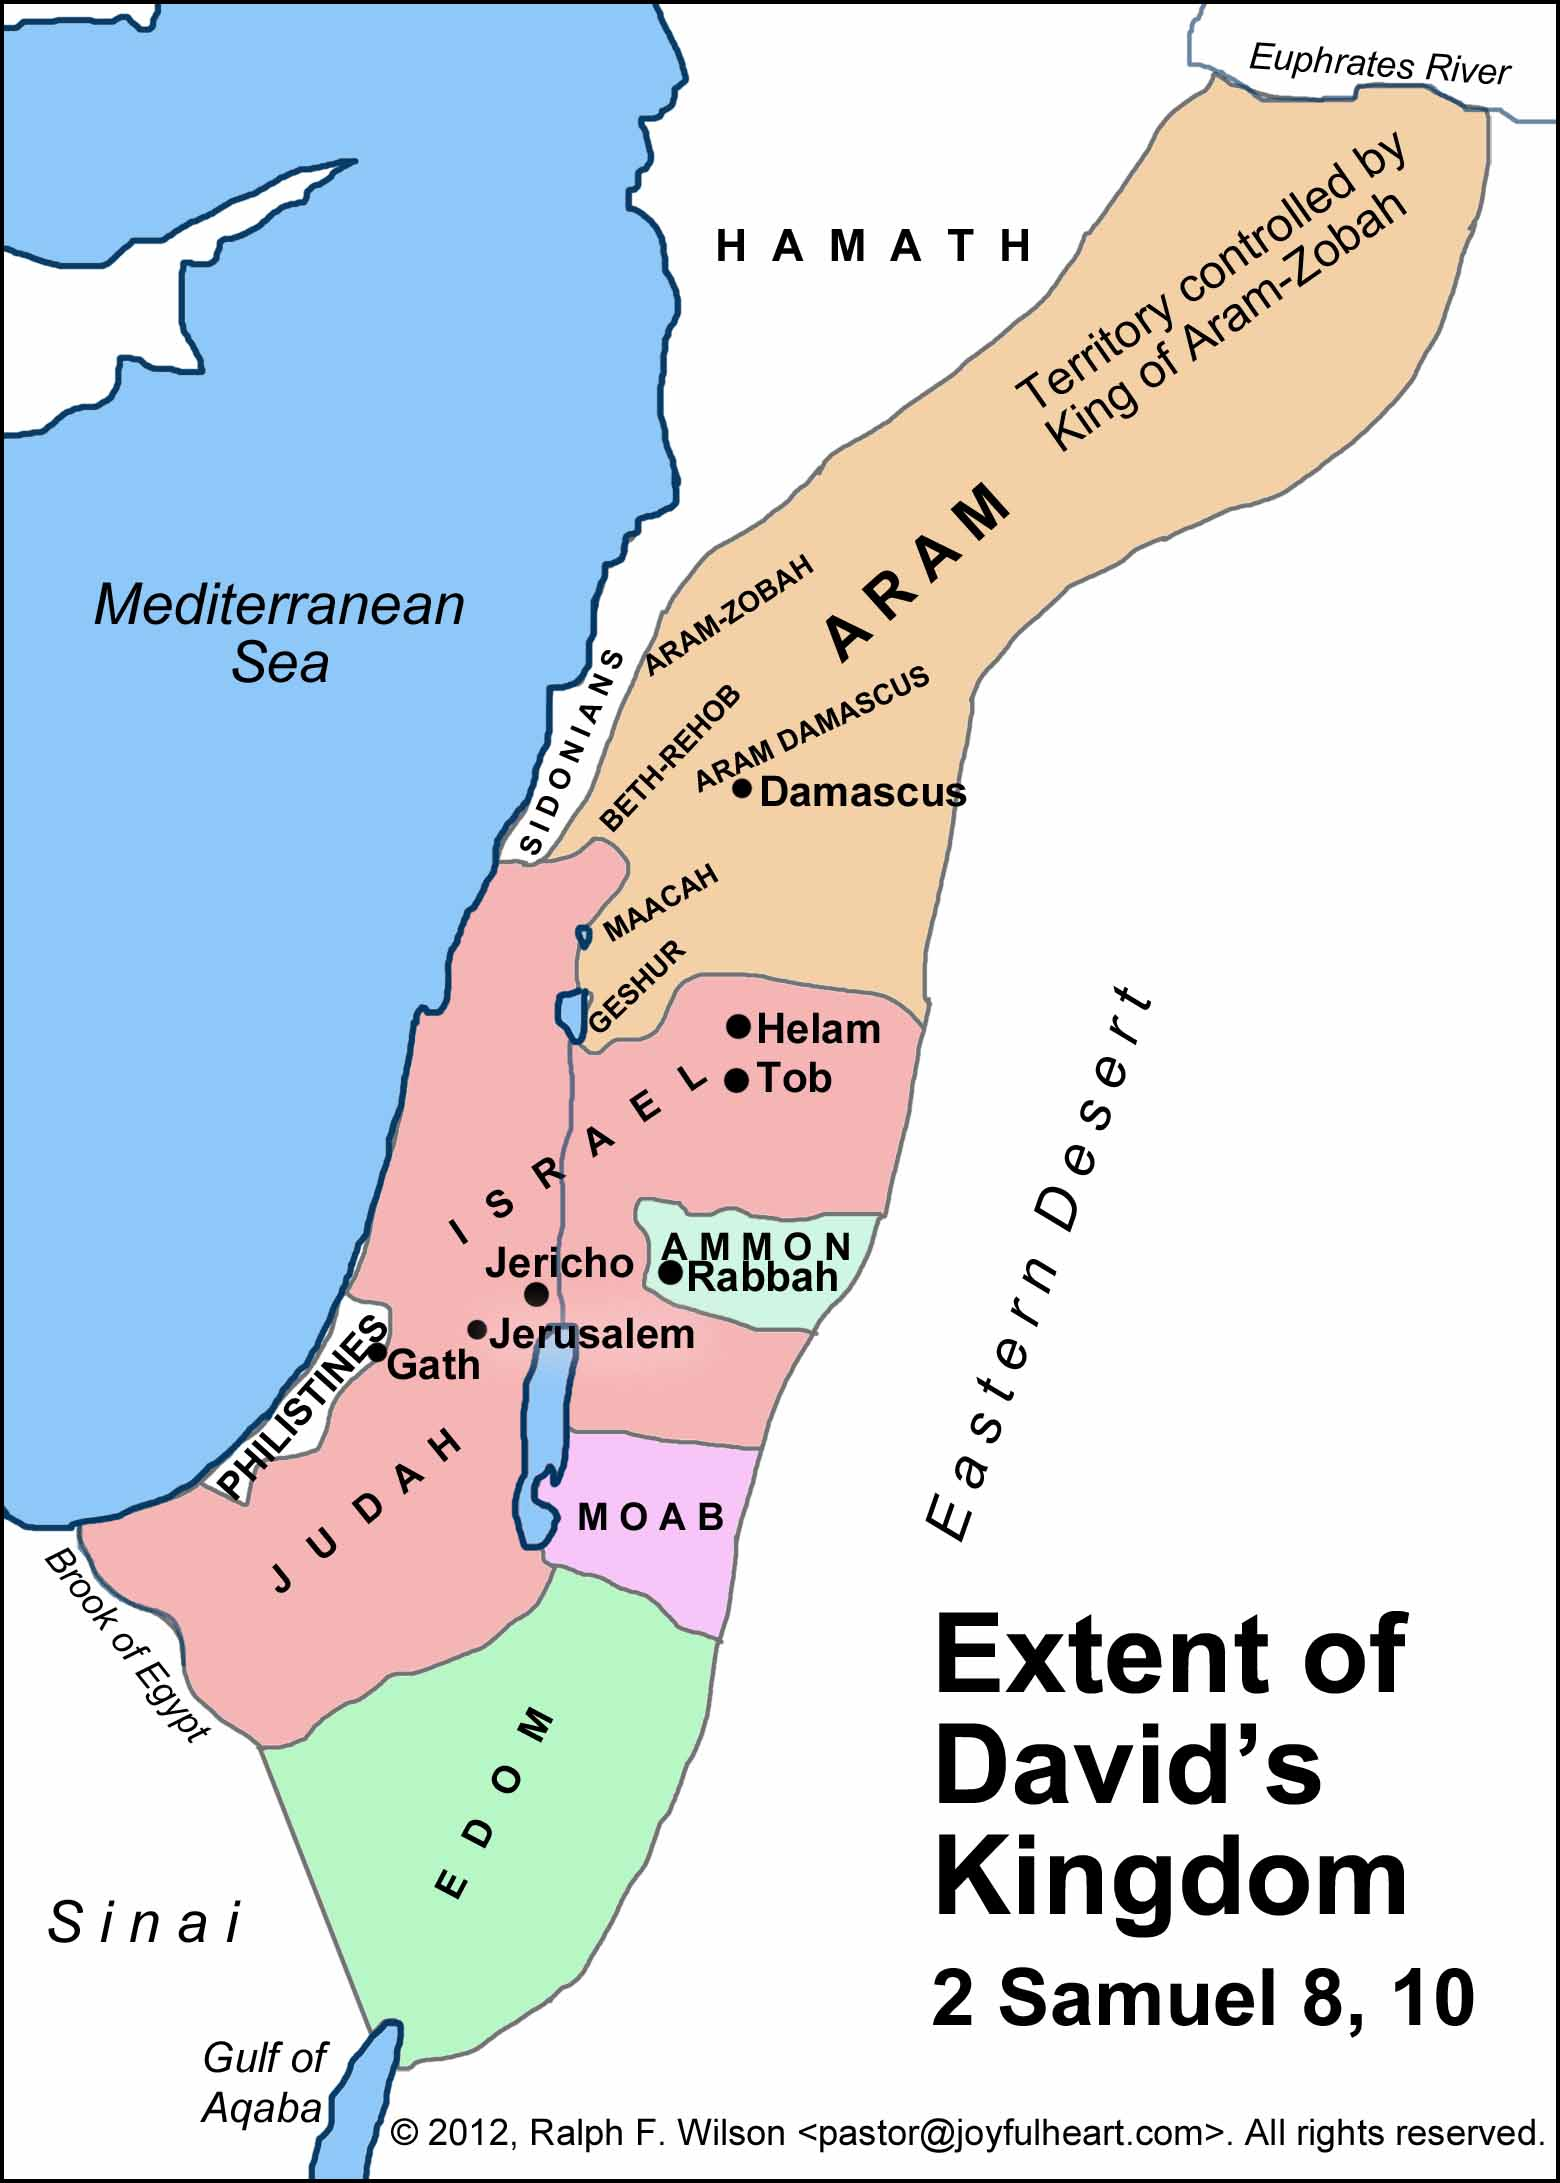 Who Anointed David King The First Time Extent Of Davids Kingdom X